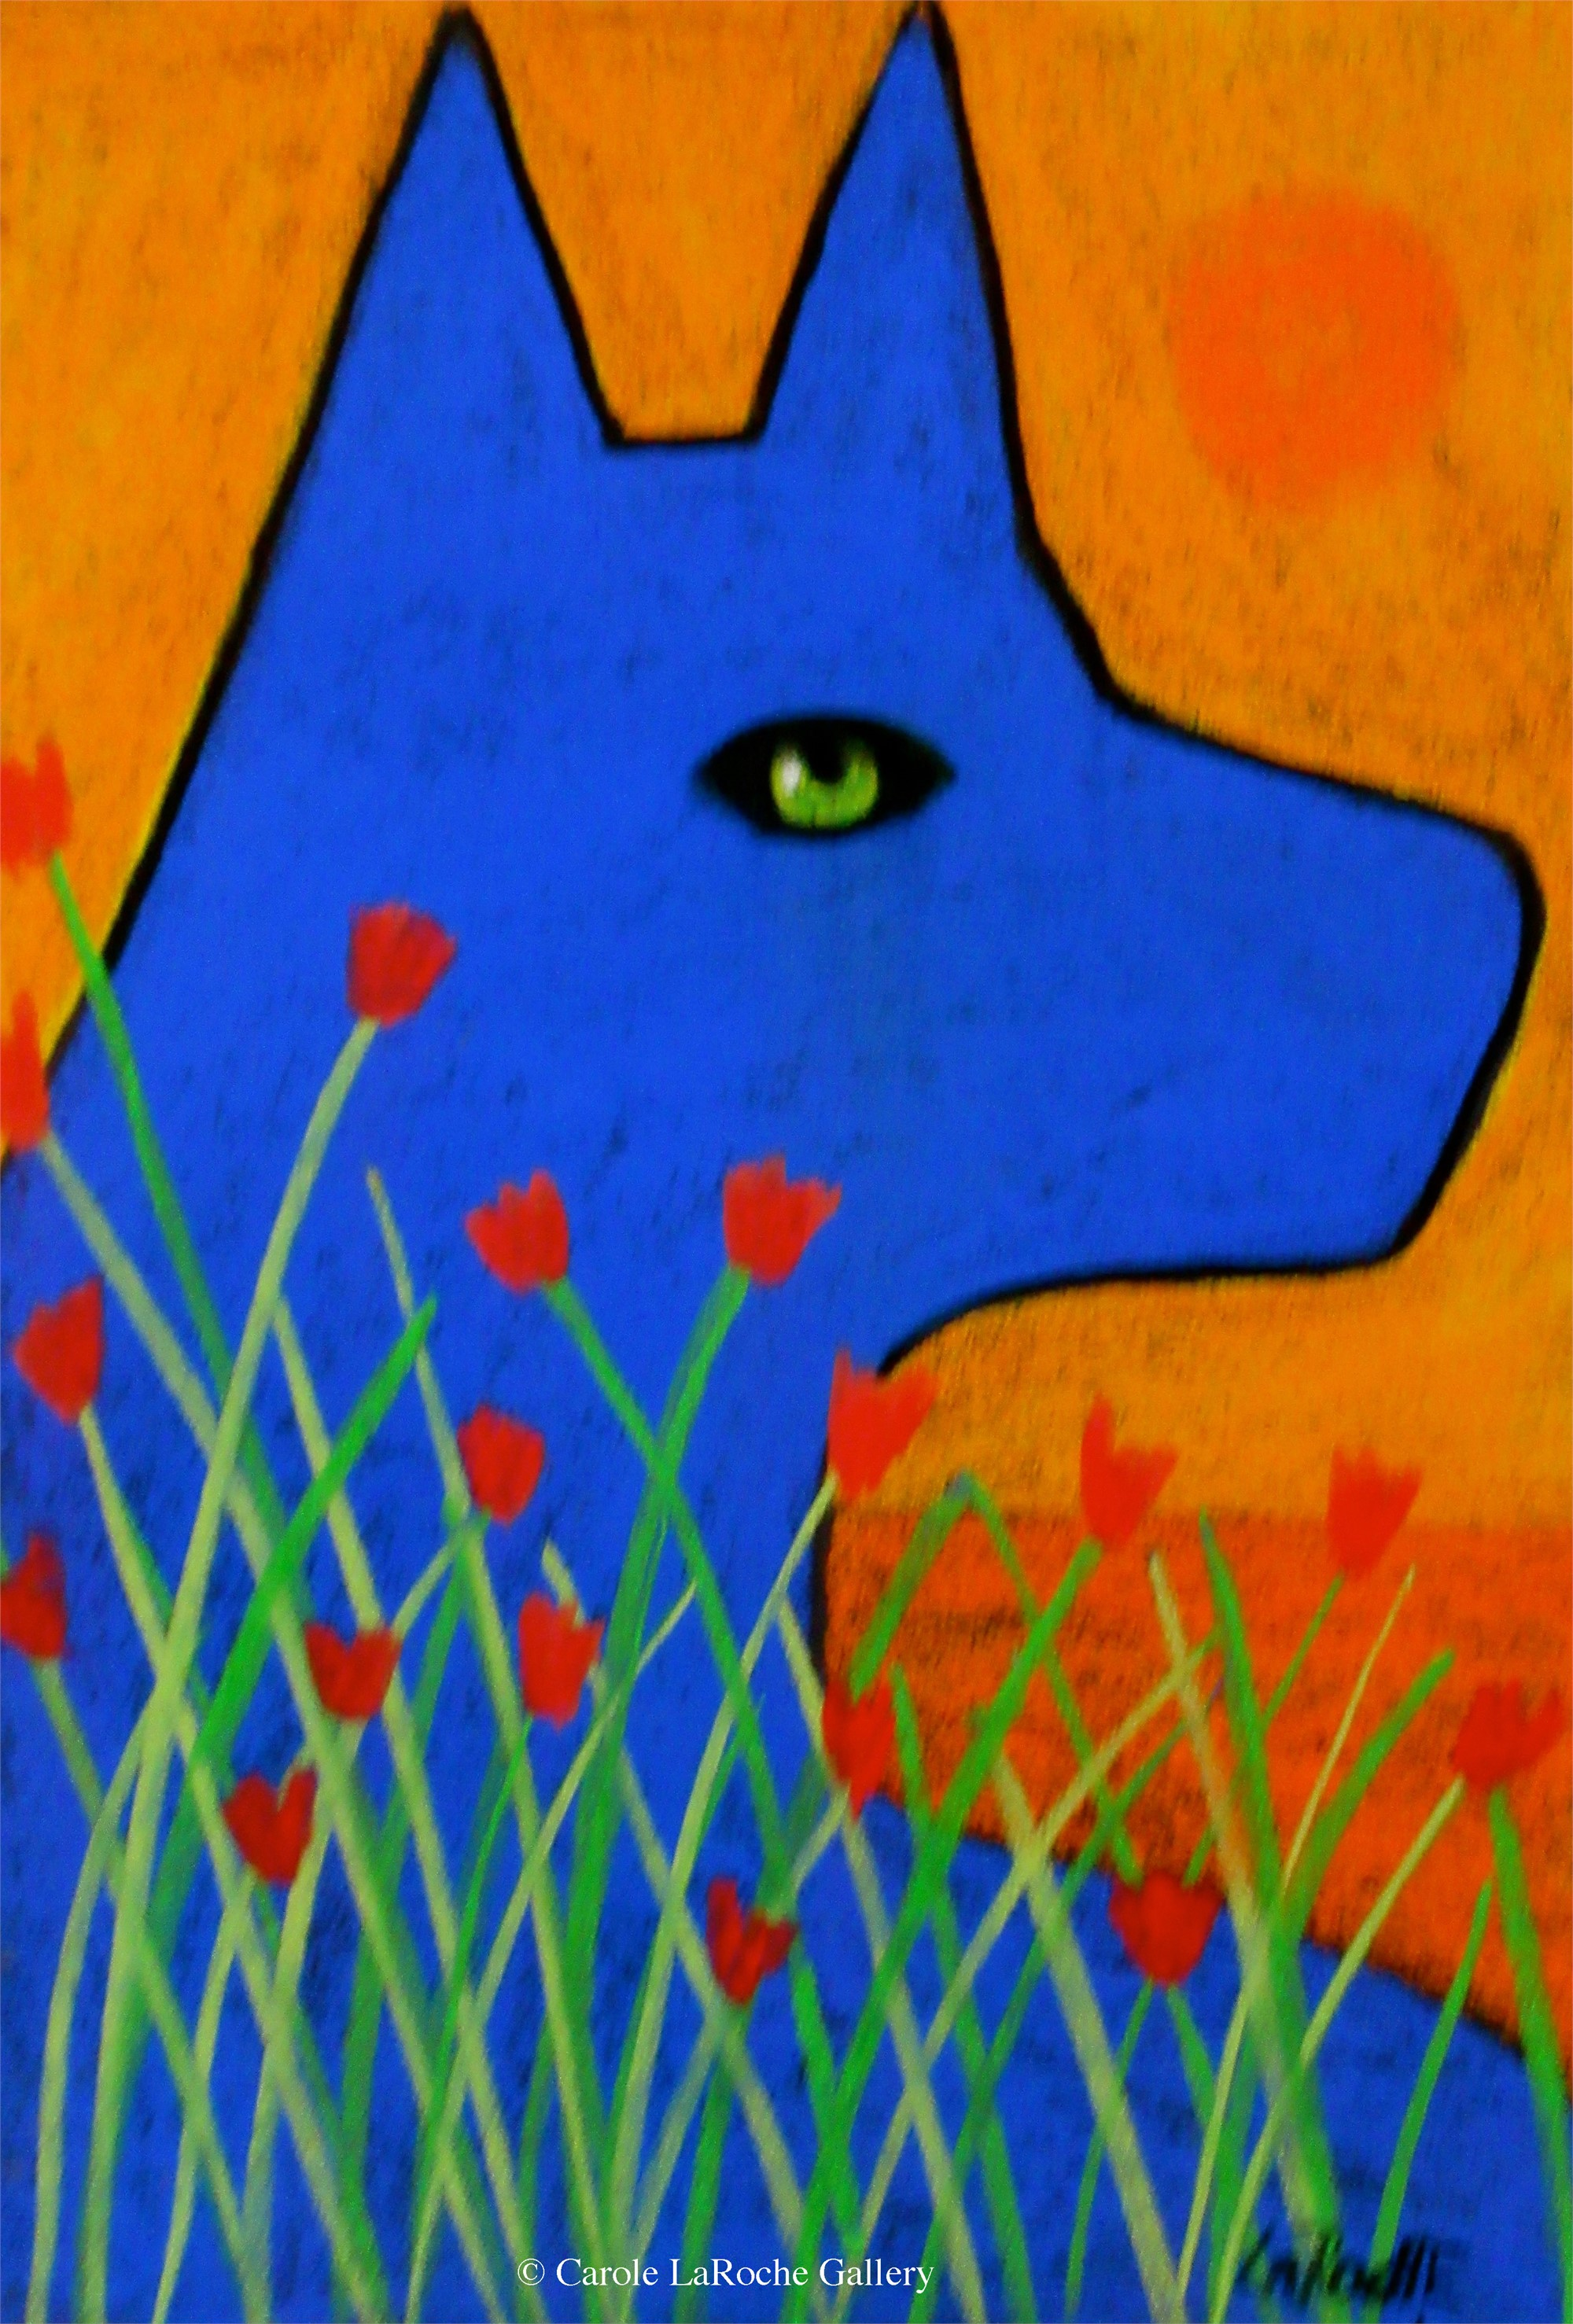 BLUE WOLF AND FLOWERS by Carole LaRoche